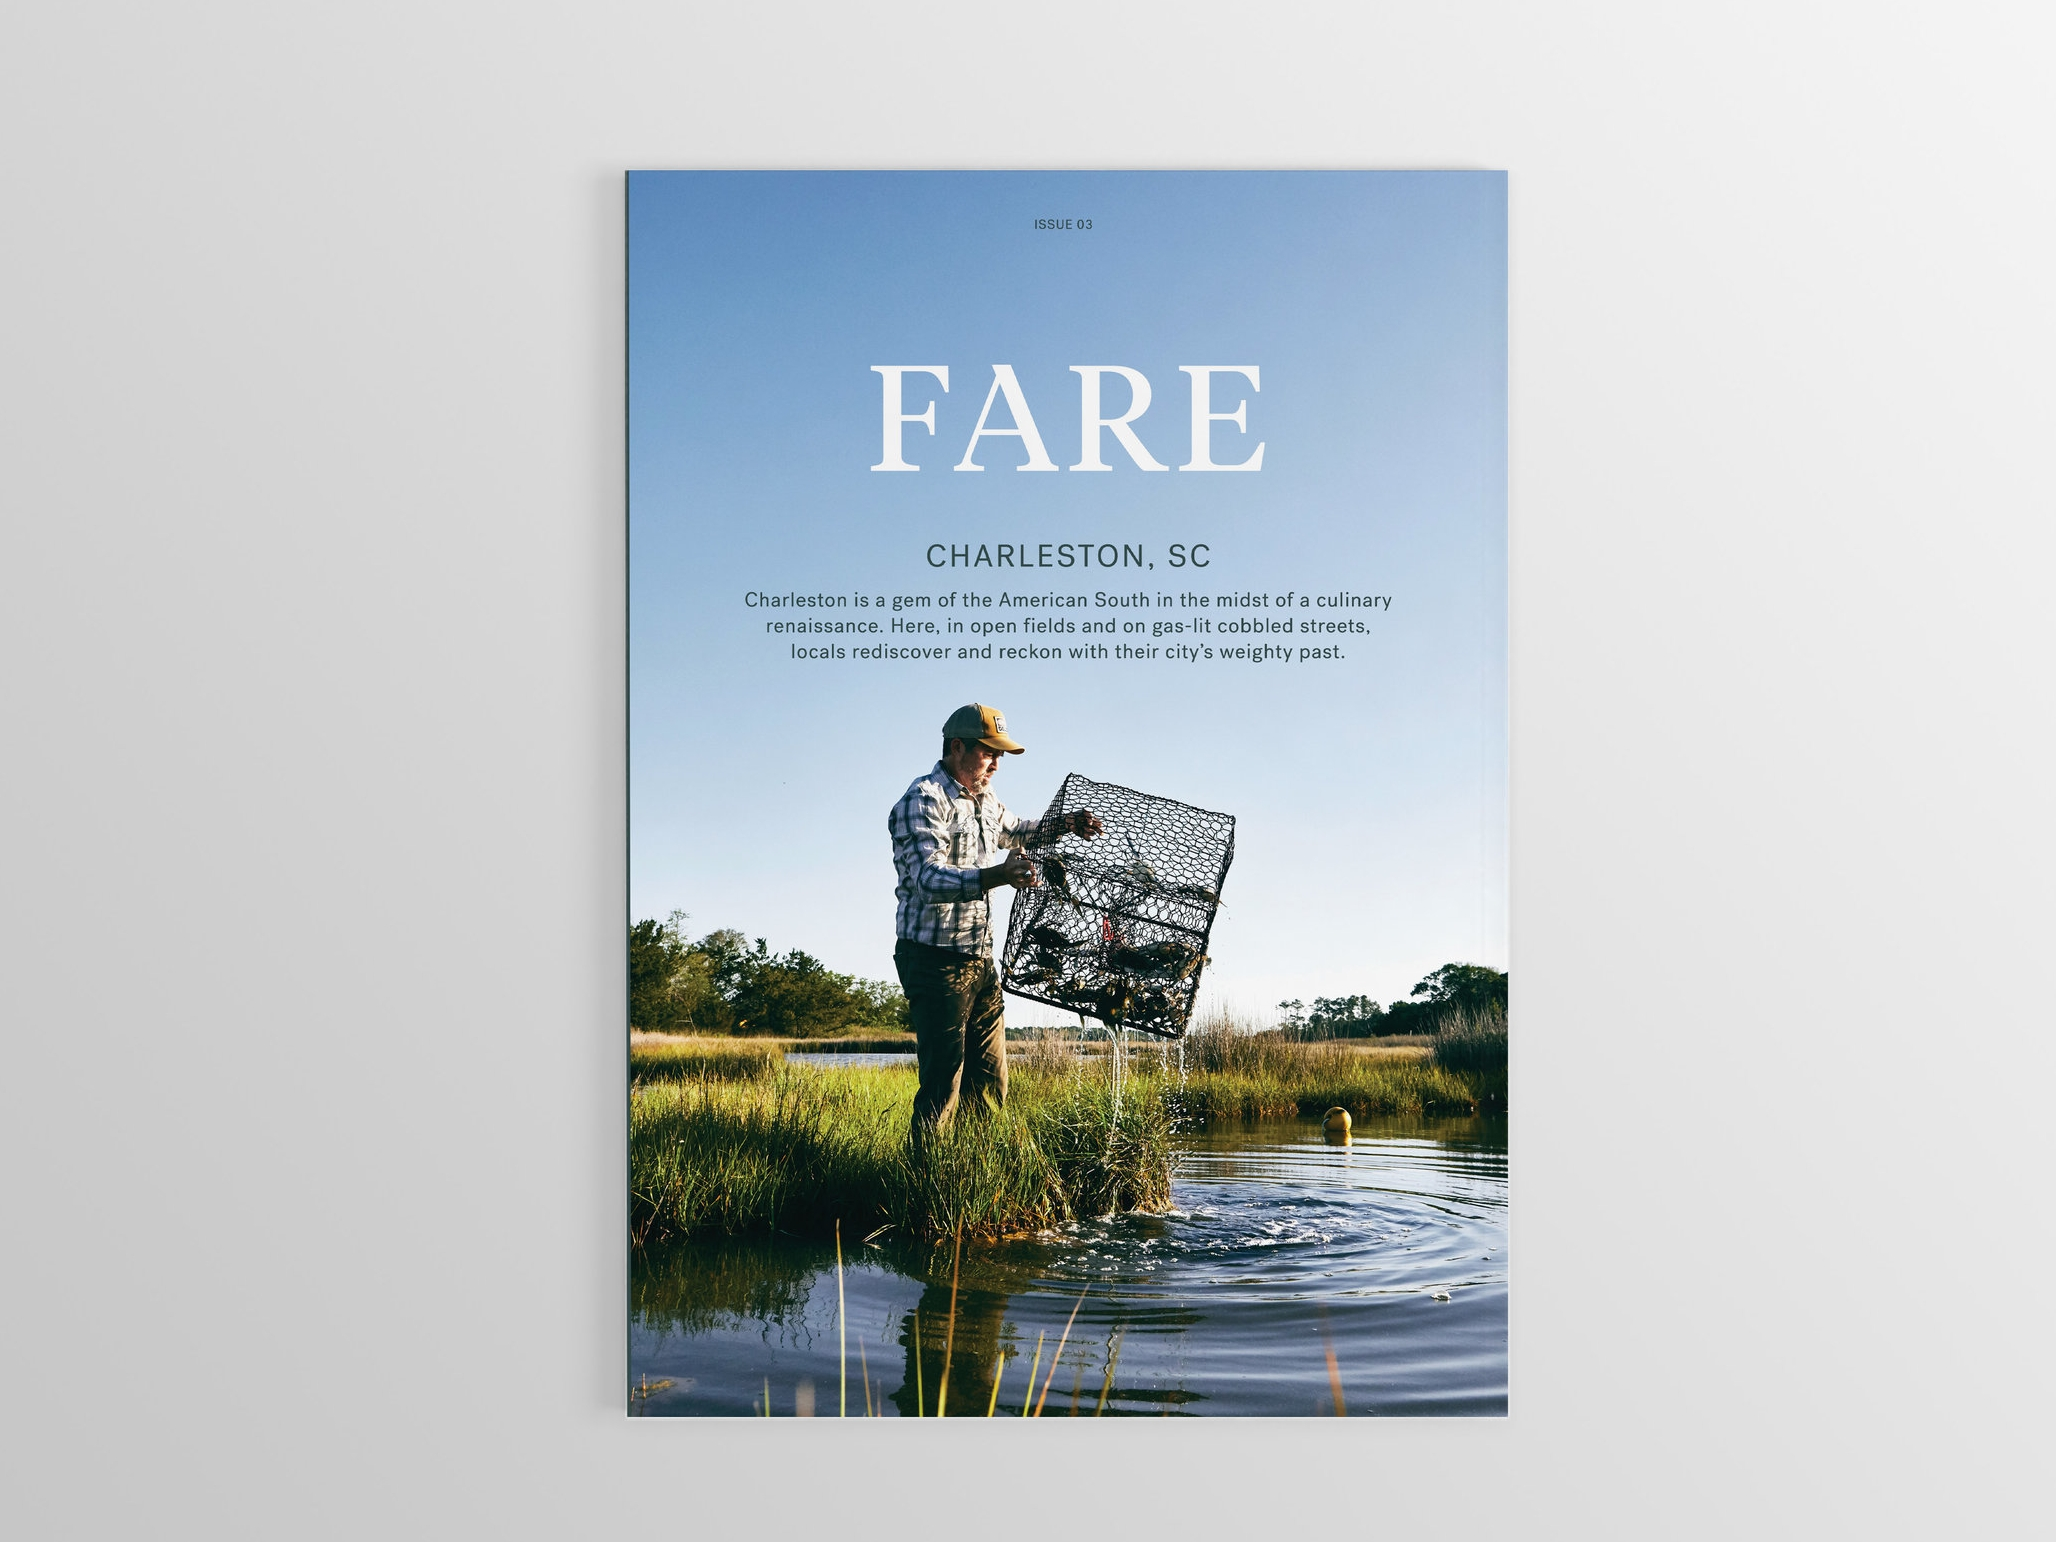 FARE-Charleston-Cover-Mockup.jpg